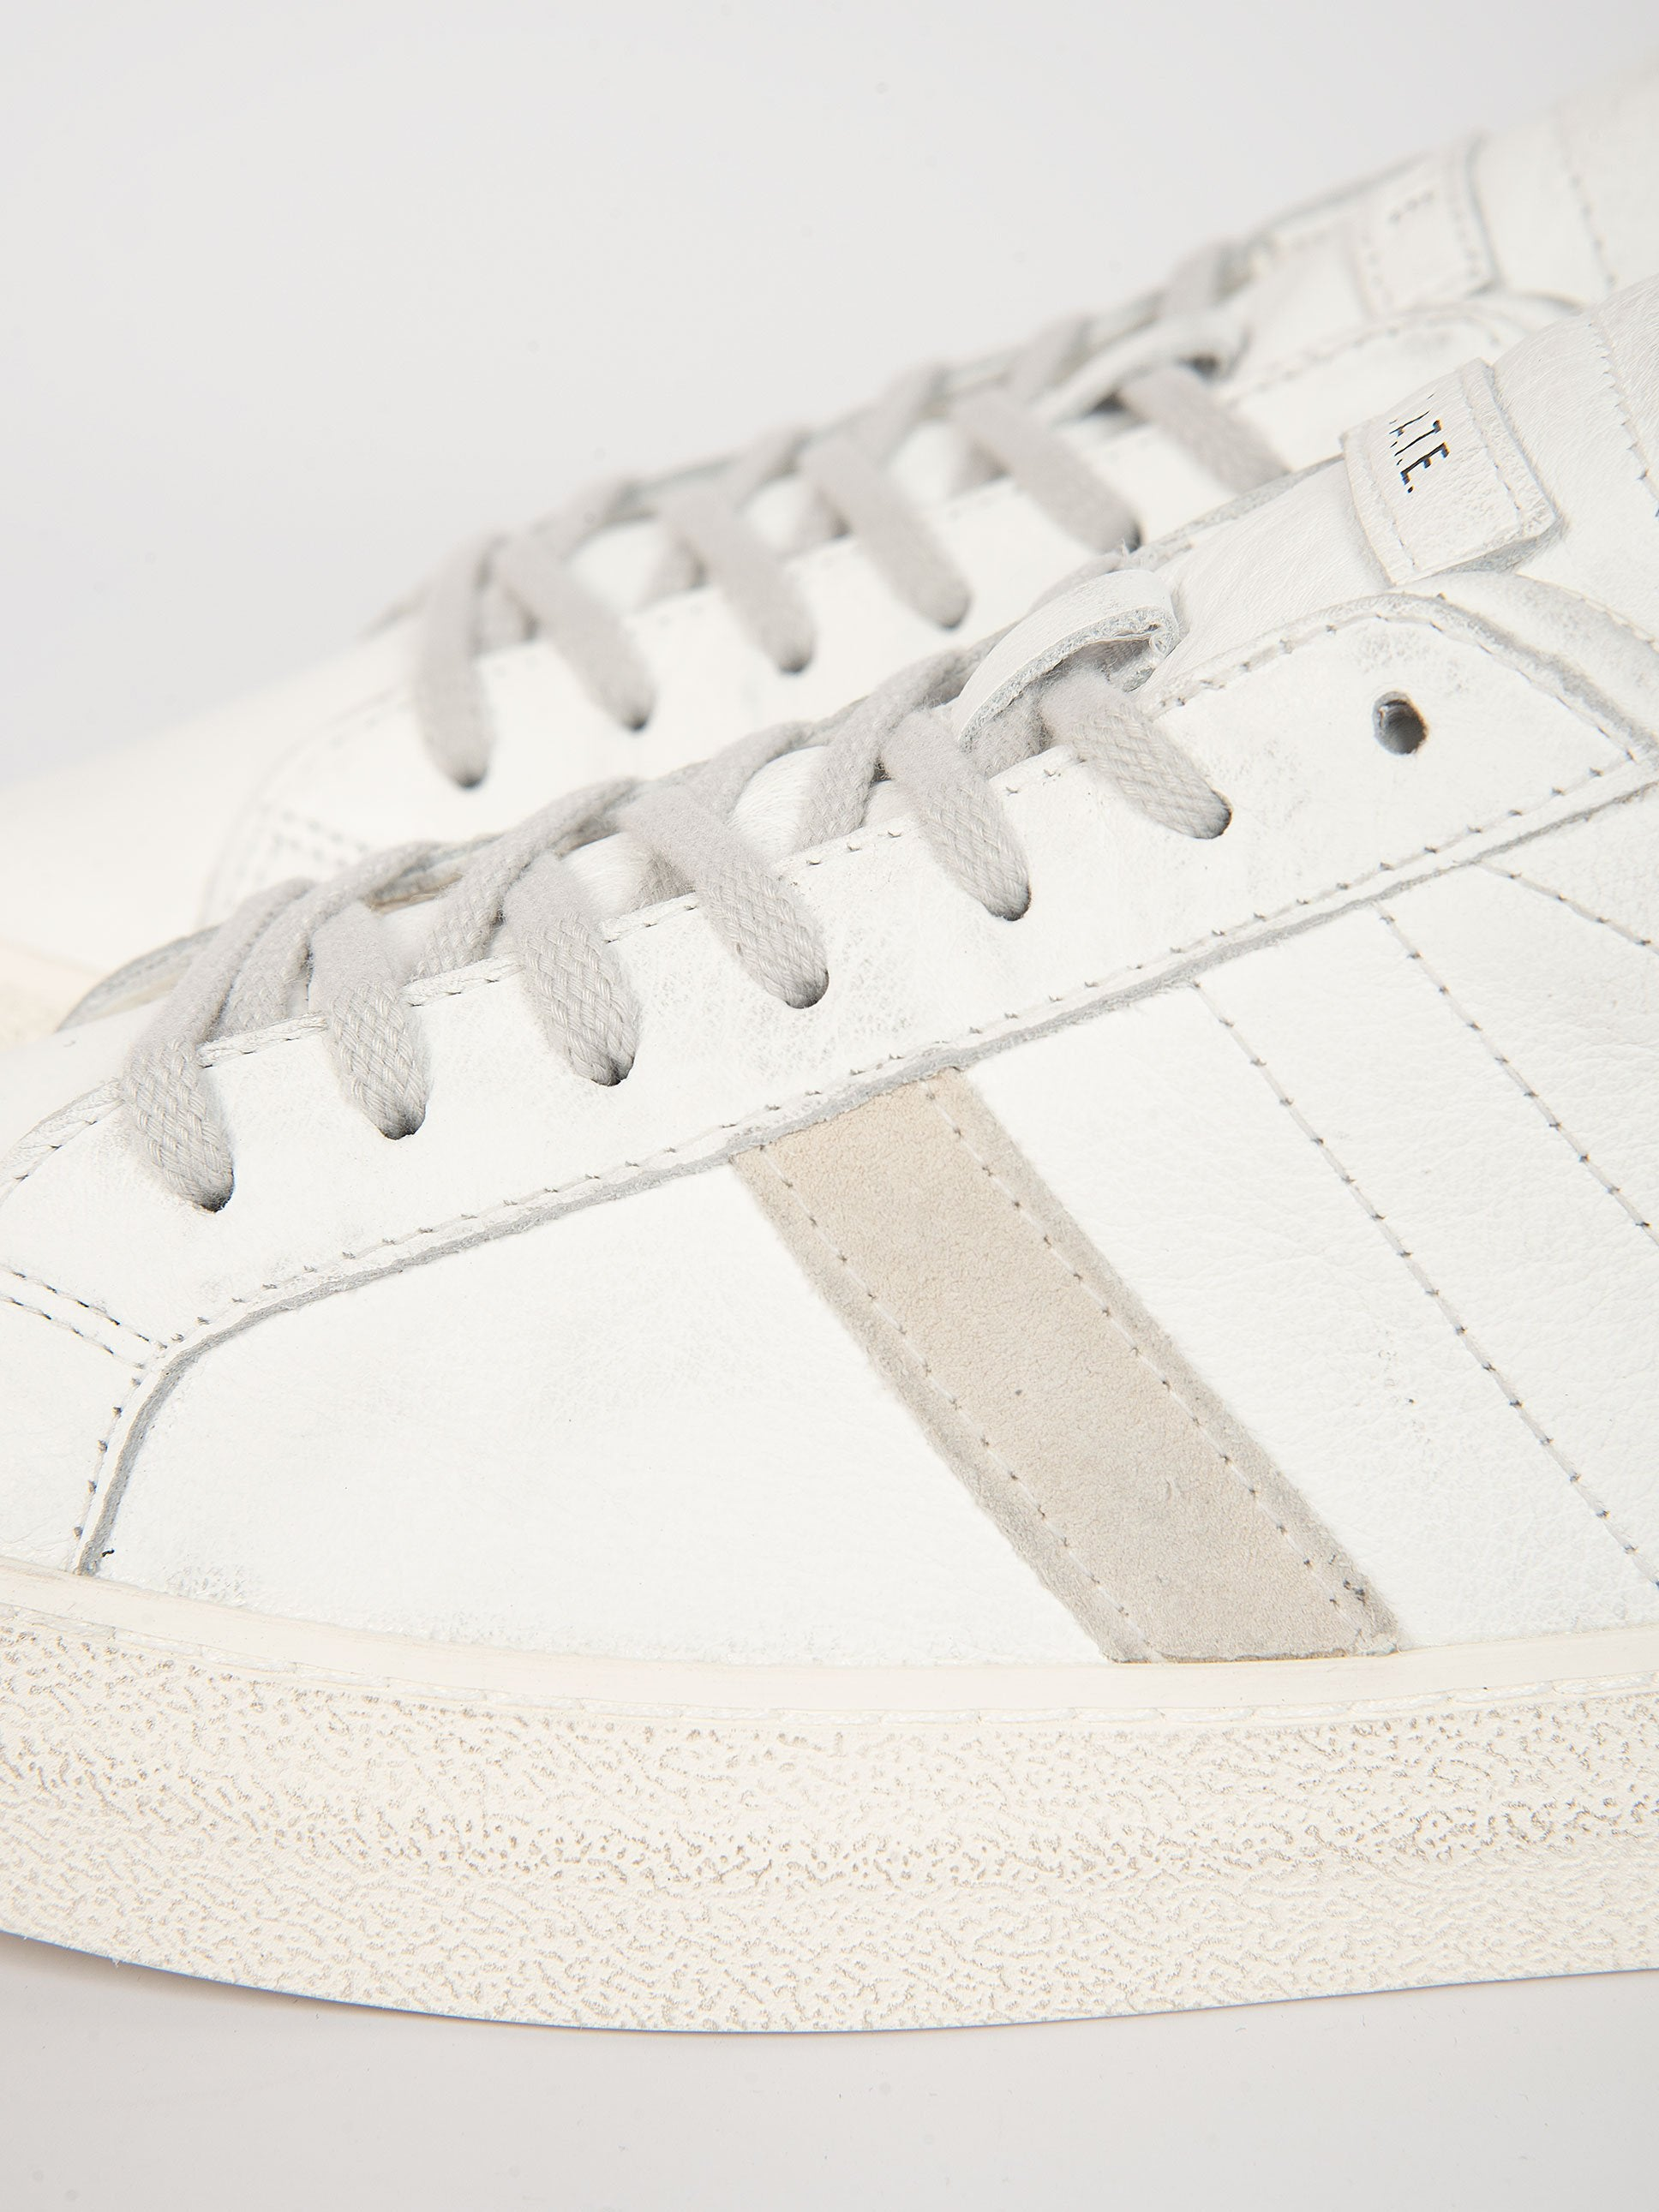 Sneaker 'Hill Low Vintage Calf' - Bianco/Nero